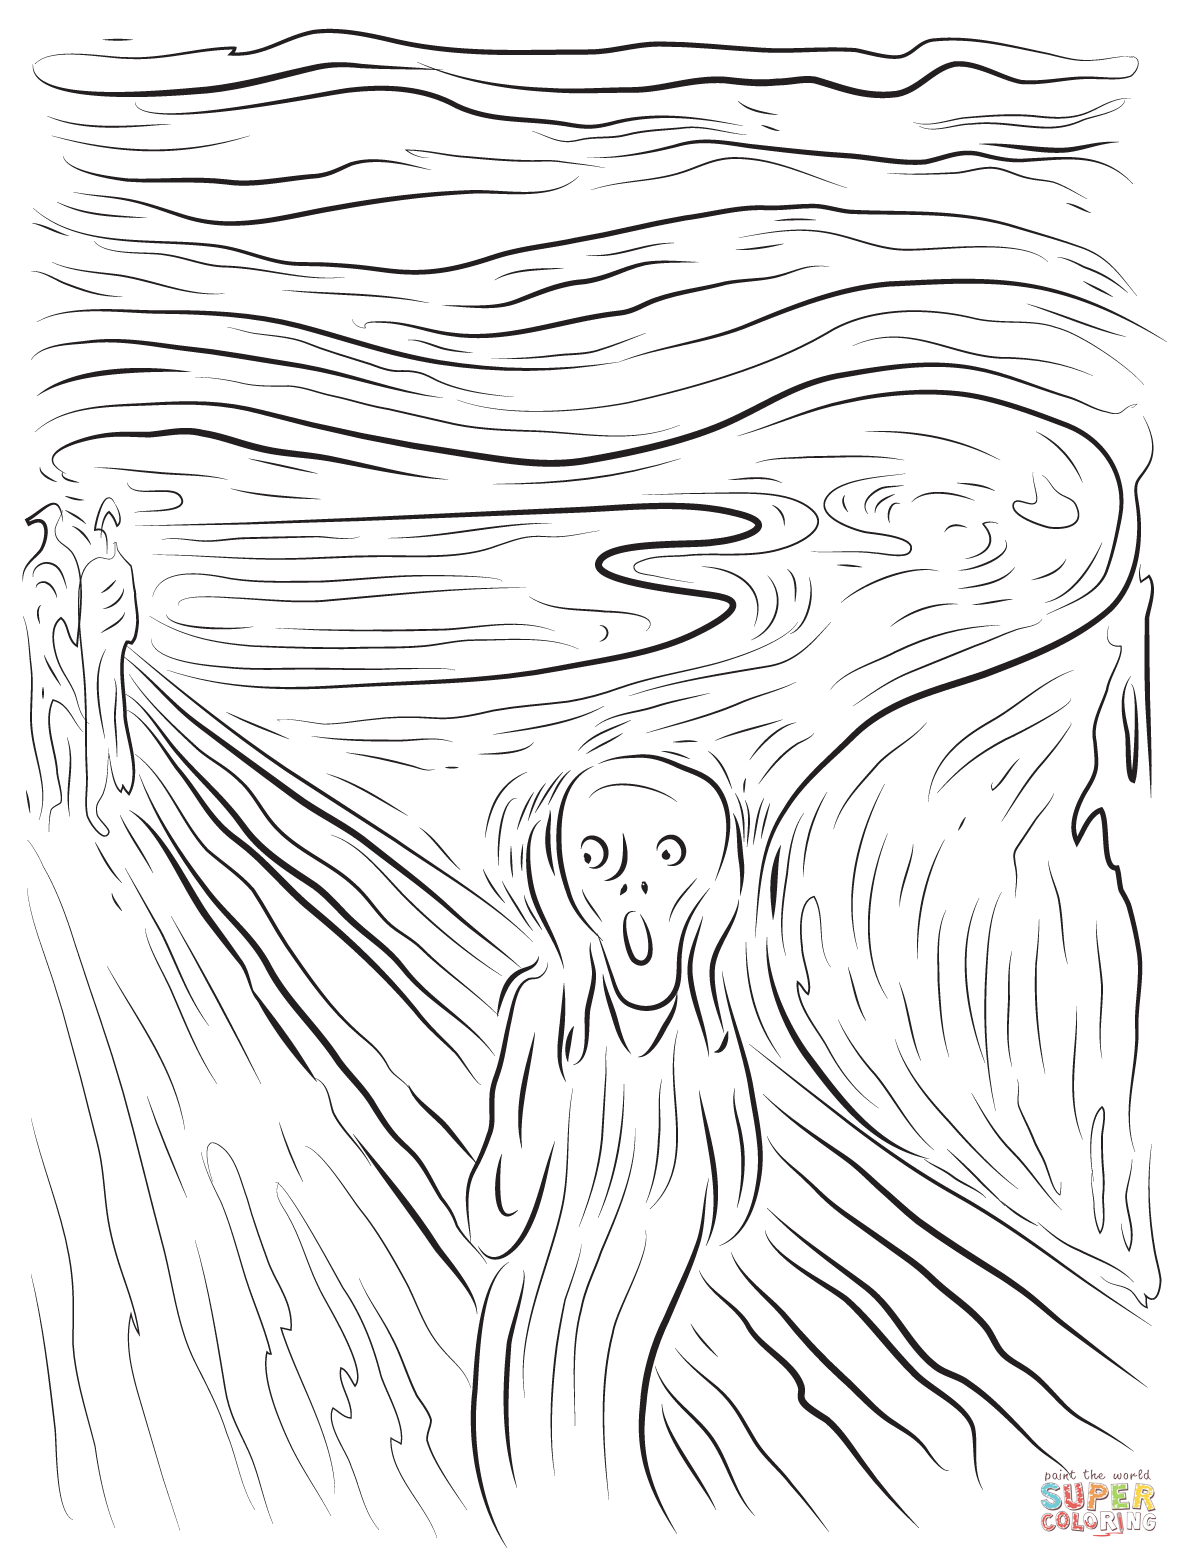 The Scream by Edvard Munch coloring page from Edvard Munch